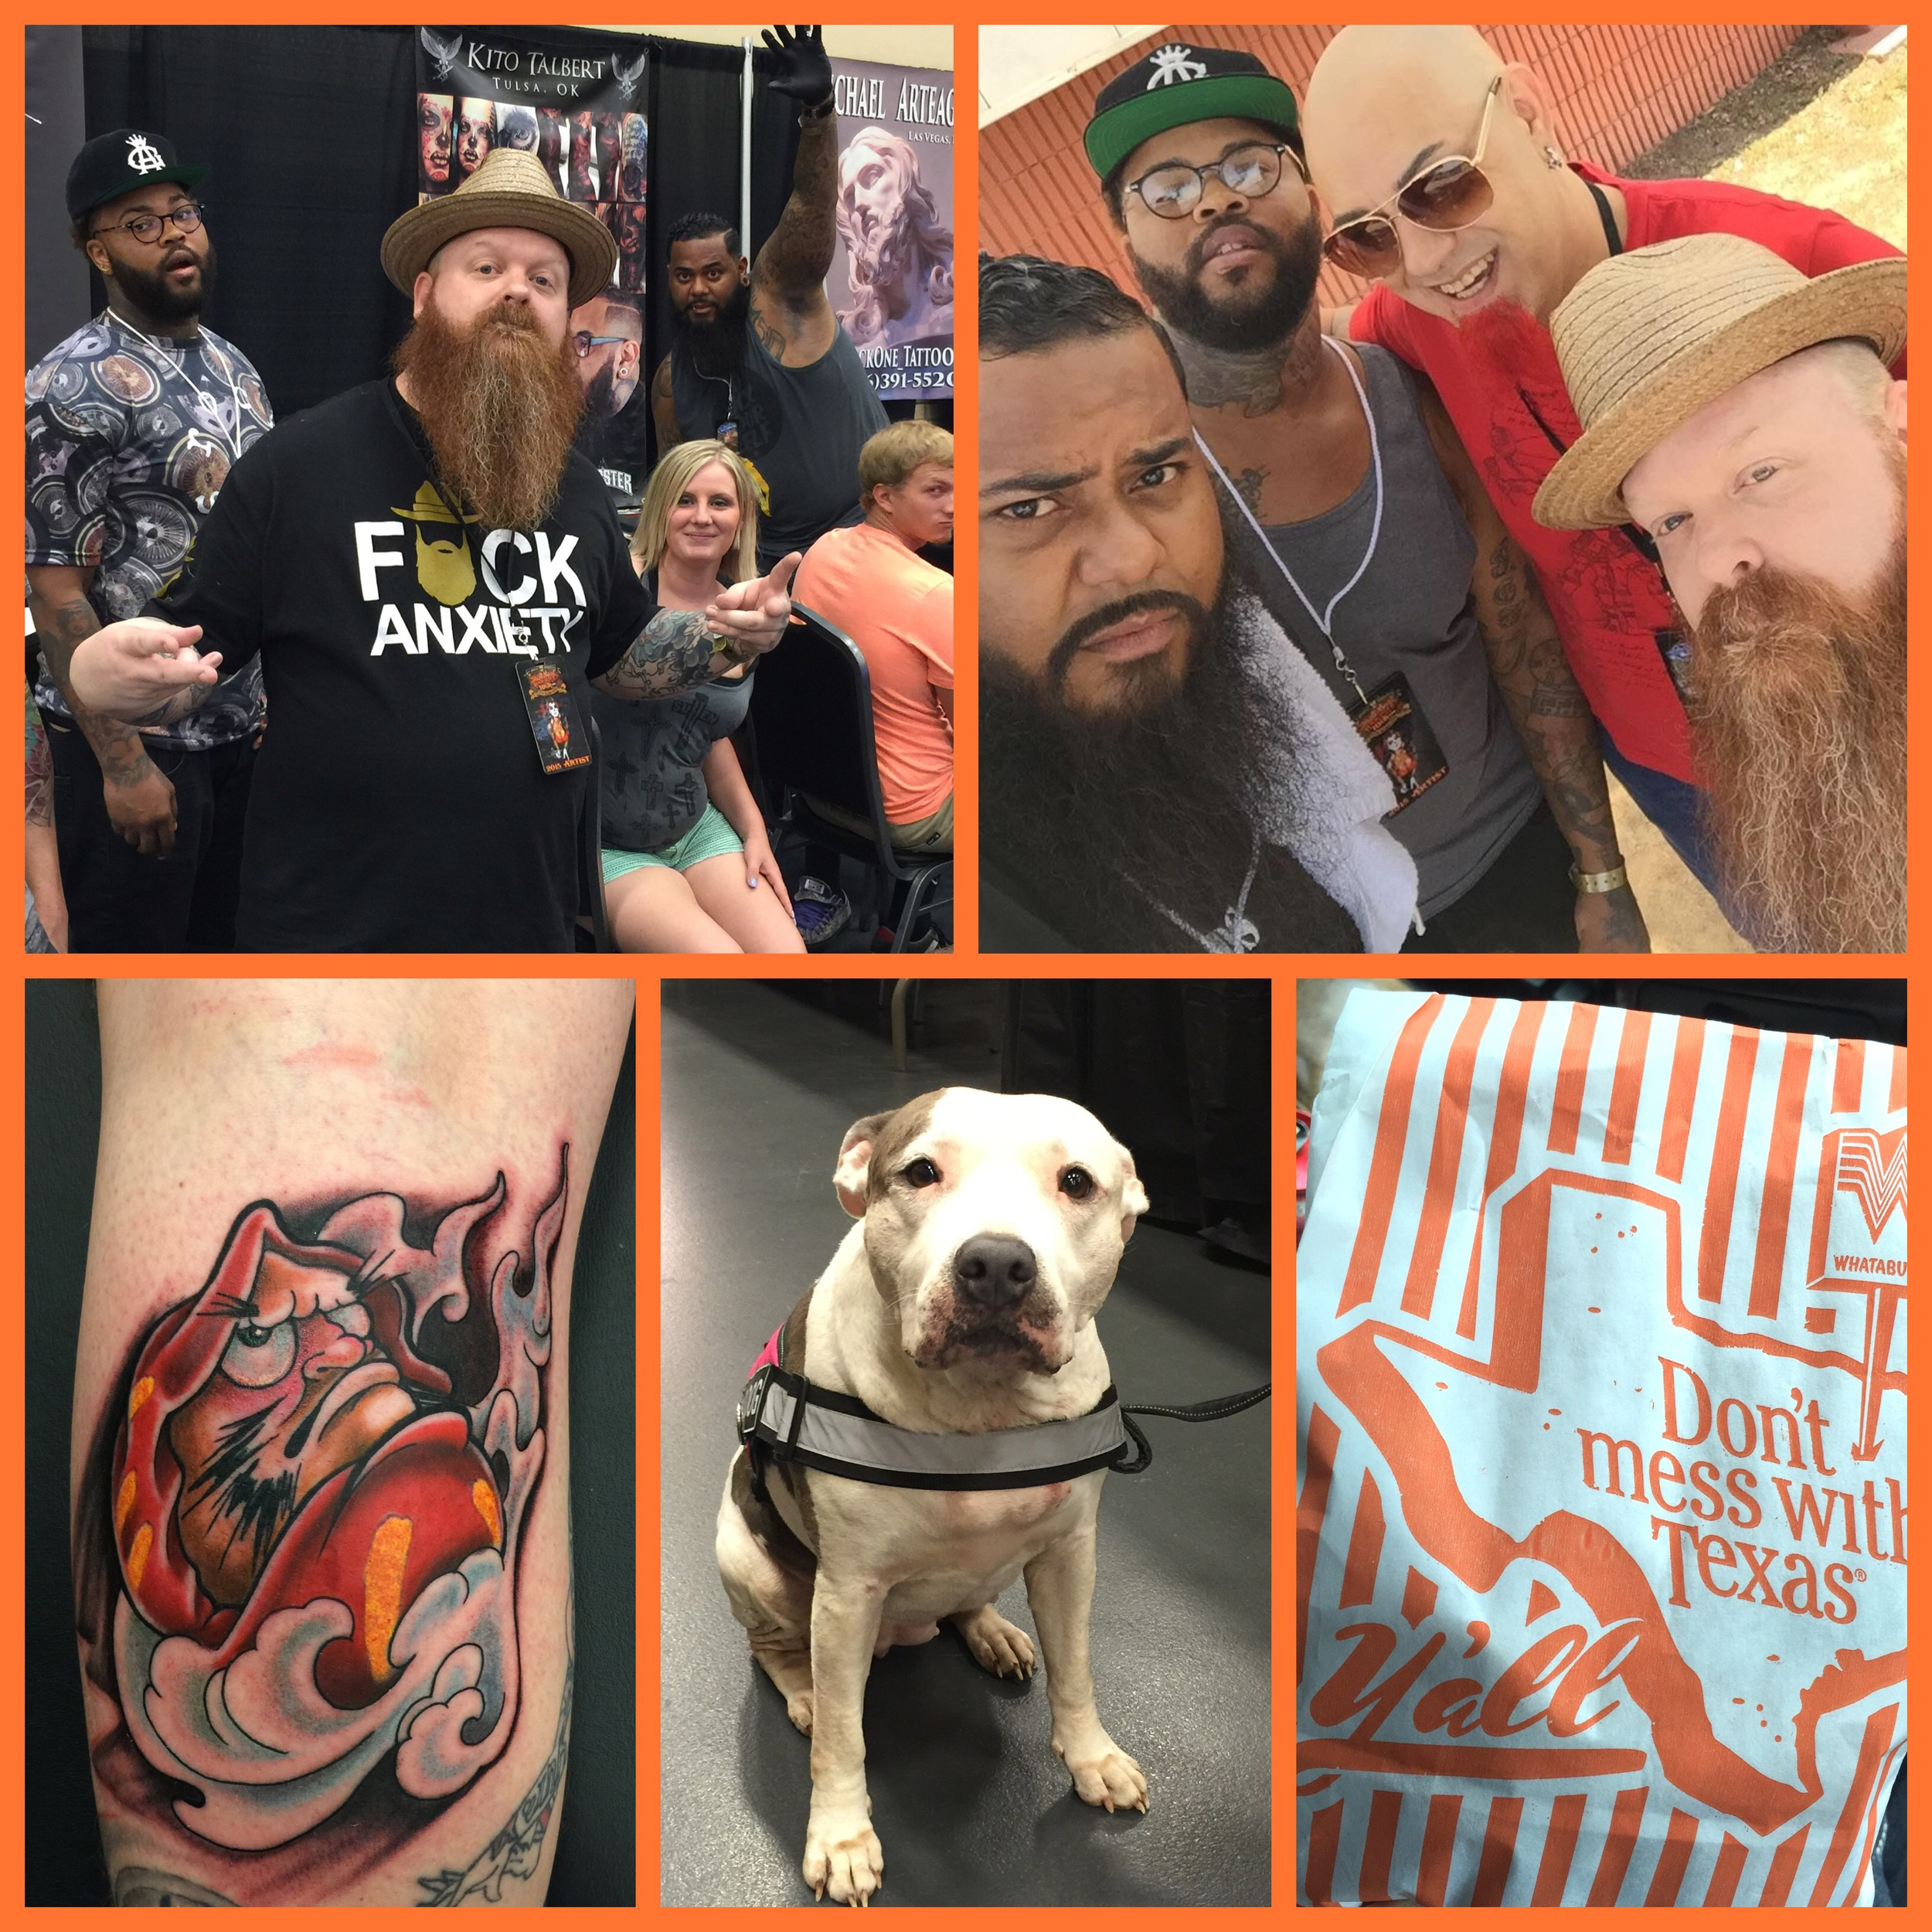 It's true. I messed with Texas. Ya'll . Nothing but fun times at the   Ink Life Tour   tattoo convention.   Maude Cobb Convention & Activity Center   in   Longview, Texa s was the hosting event center this year. There was a whole slu of activities on hand. Not only could you take home a new tattoo but there was a dog rescue in there. Puppies! Bands included  Misfits ,  Puddle of Mudd  and  Saving Abel .  I got the opportunity to share a booth with my friends  Kito  from  Inkmaster Season 6 . My bro  Jiggy  and  Dallas  artist  Sparticus . I watched  Sparticus  from  Artistic Encounters  tattoo a killer portrait of  Charles Manson  on his own Mother. I believe Now, I have officially seen it all. Lol.   I want to thank all the fans, friends, fellow tattooers and all the people that treated me so well. I can't wait to come back next year and tattoo Ya'll again.